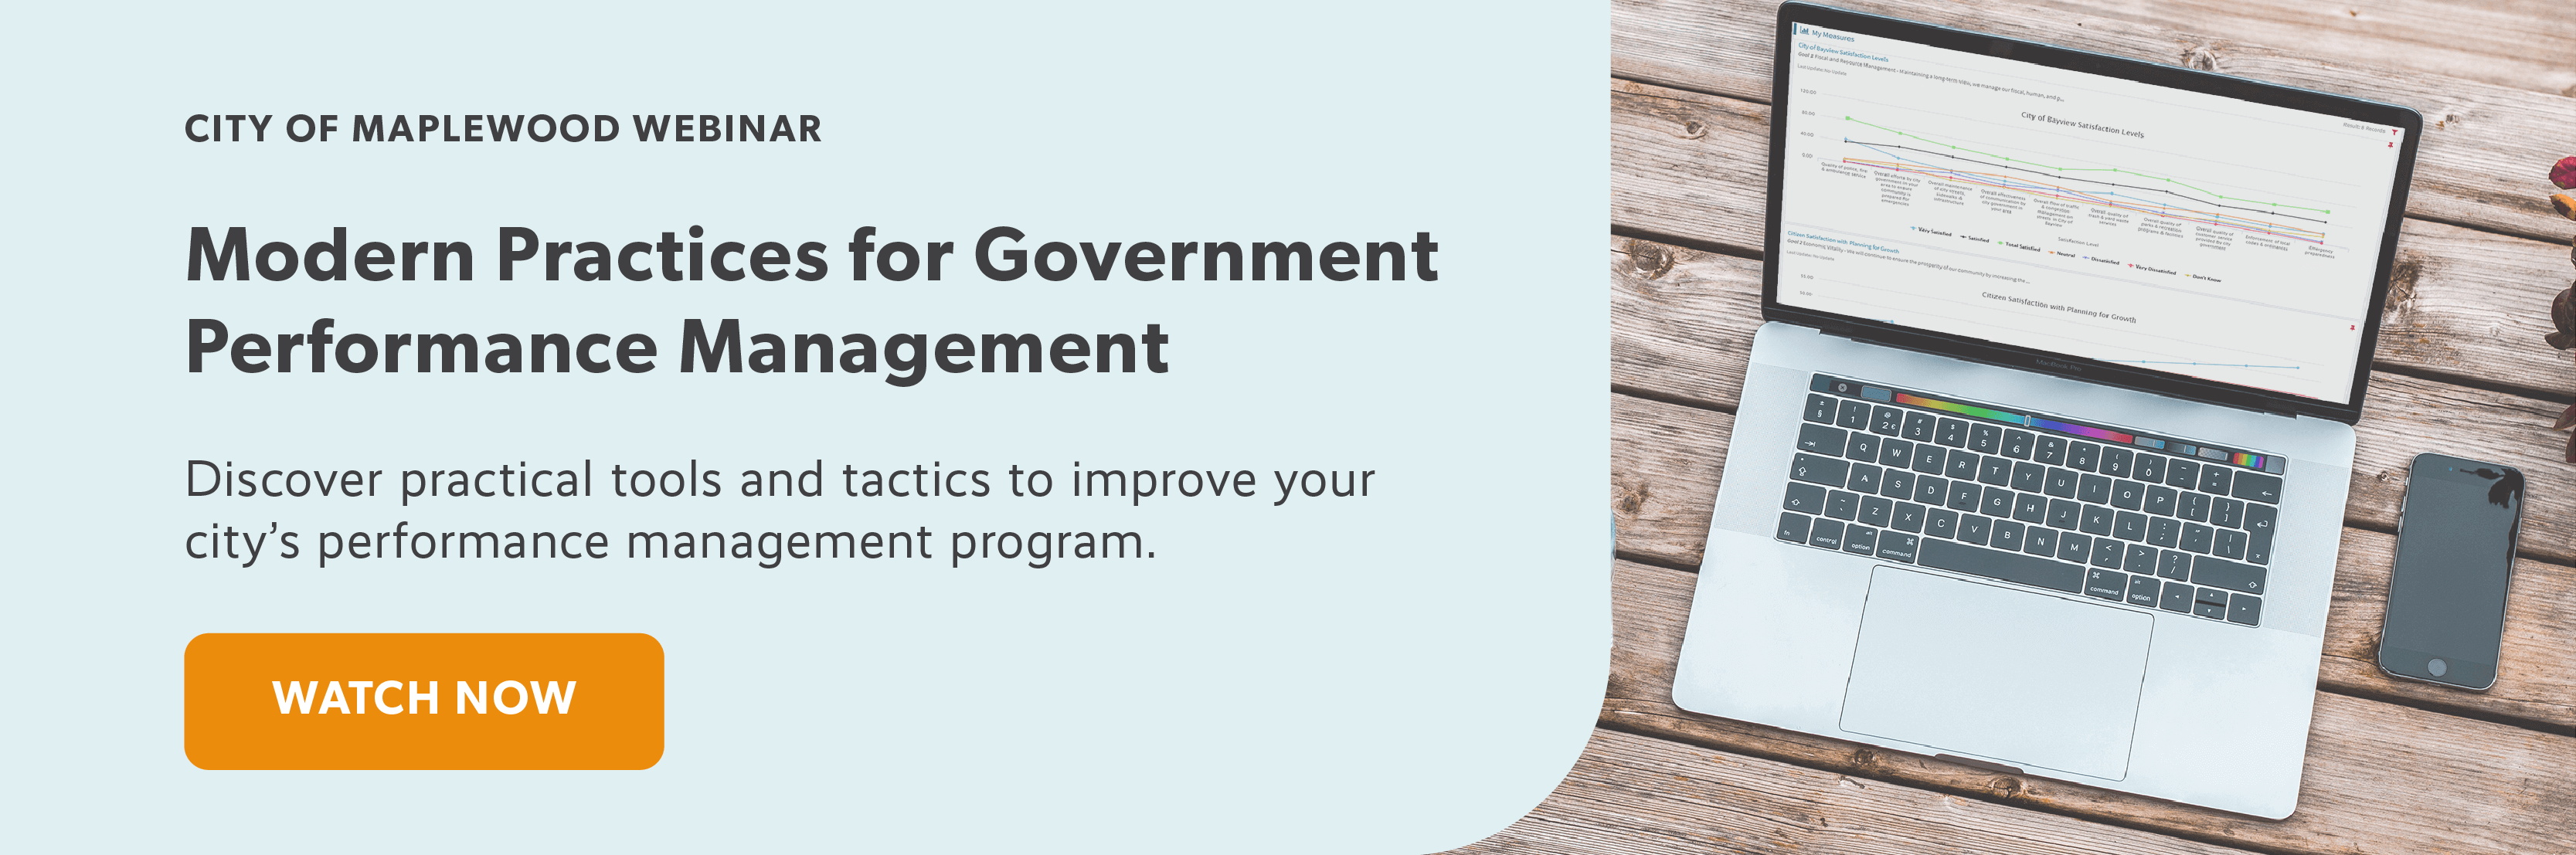 Modern Practices for Government Performance Management